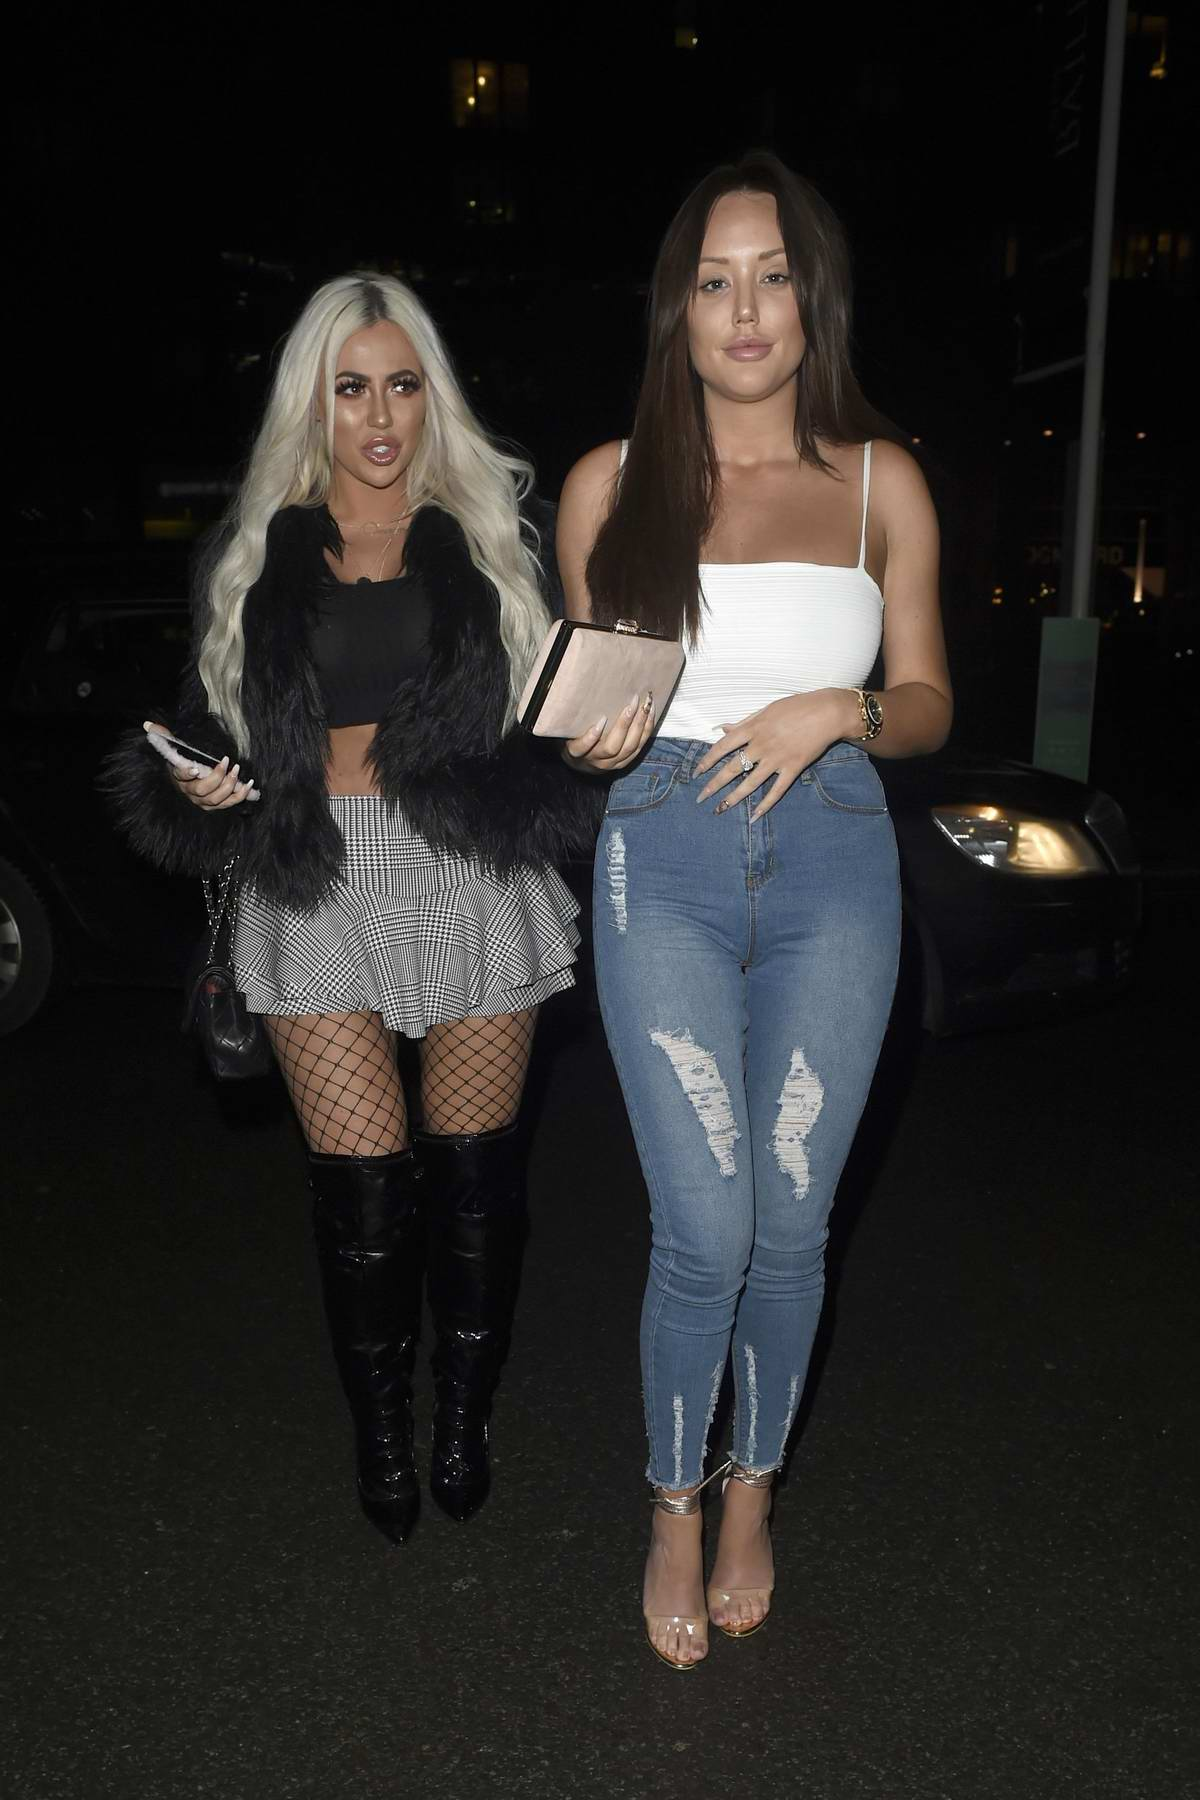 Charlotte Crosby and Holly Hagan enjoying a night out at Menagerie in Manchester, UK